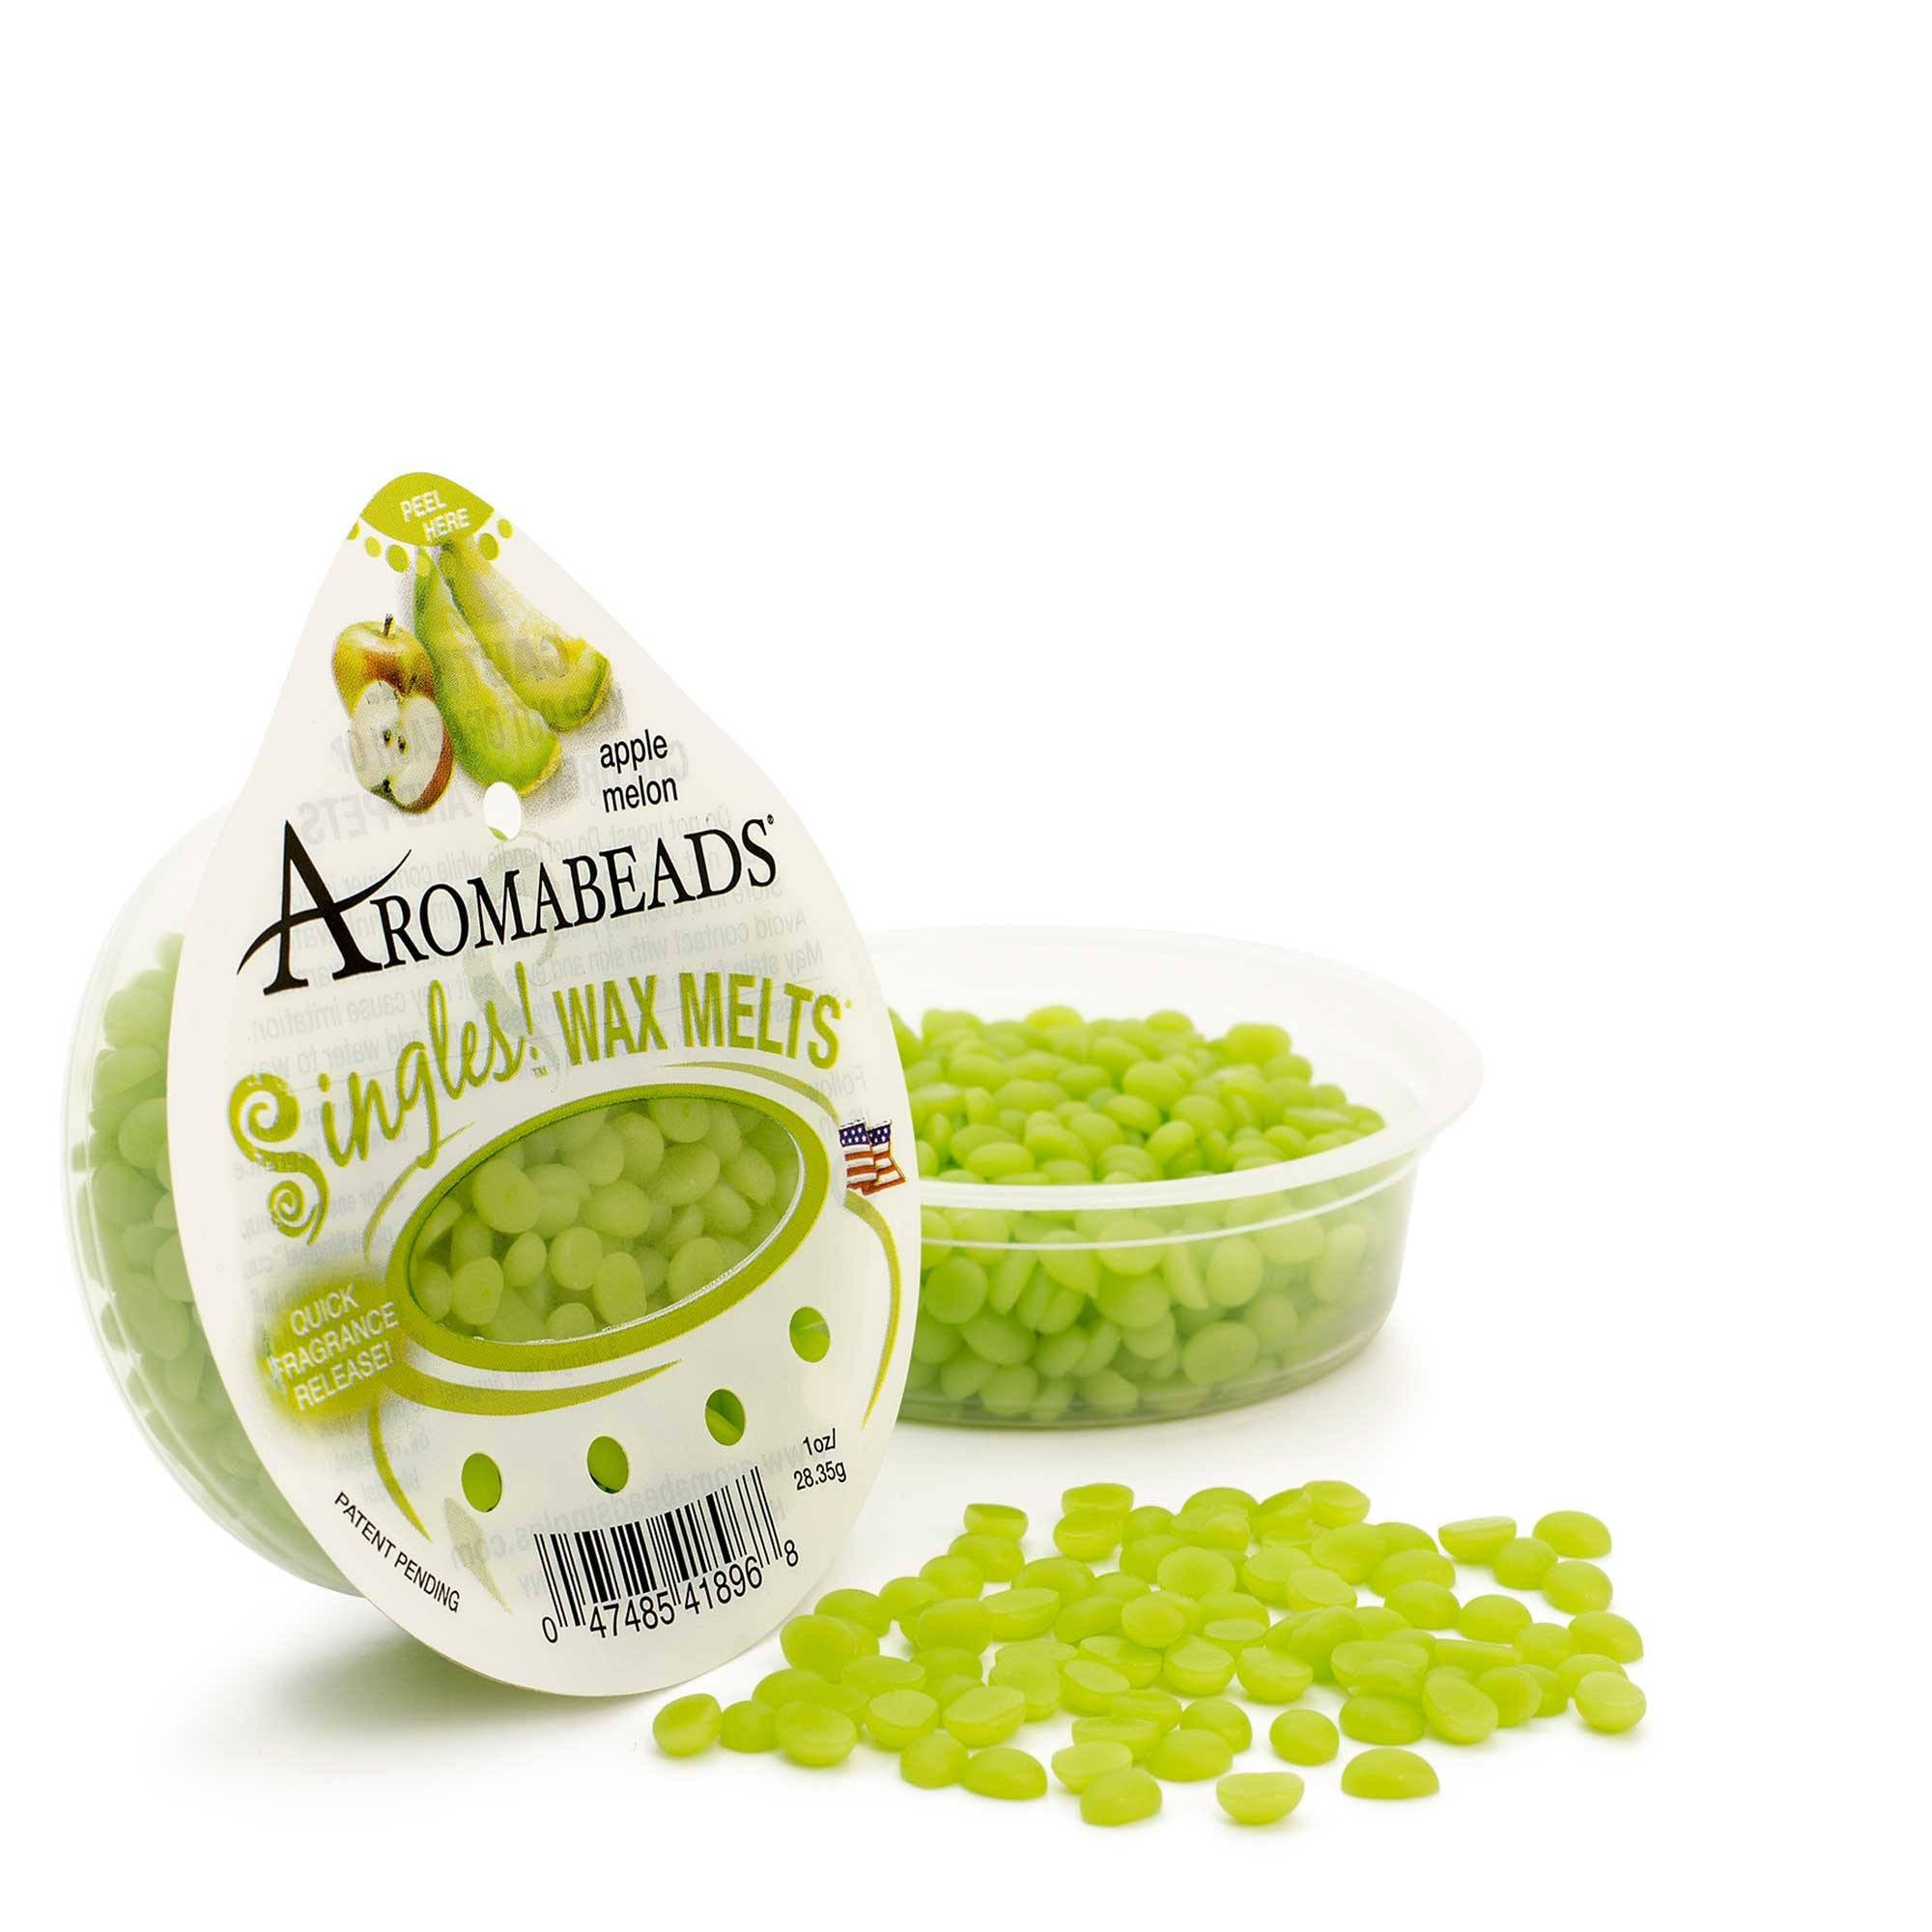 Aromabeads Singles Apple Melon Scented Wax Melts - Candlemart.com - 1